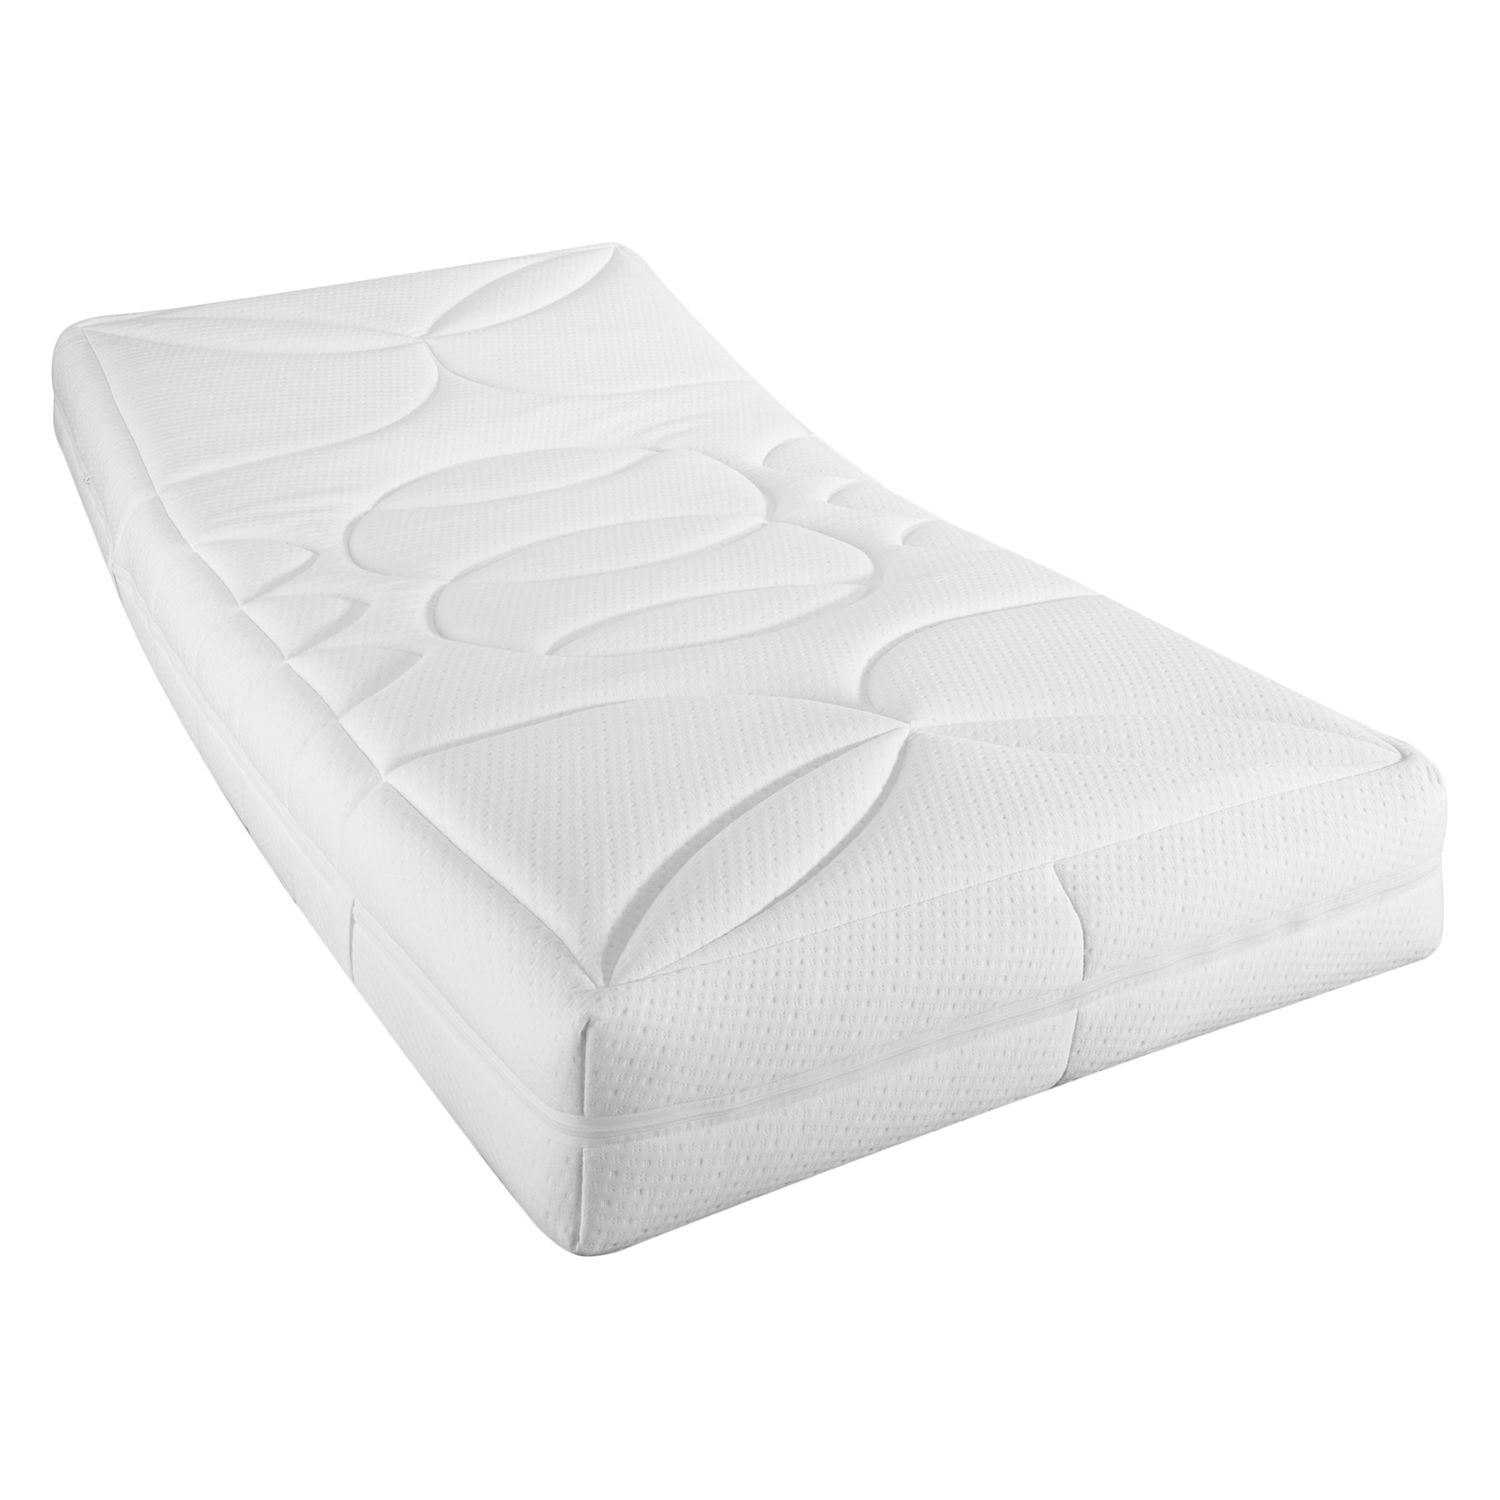 Adaptief matras Premium KS, f.a.n.